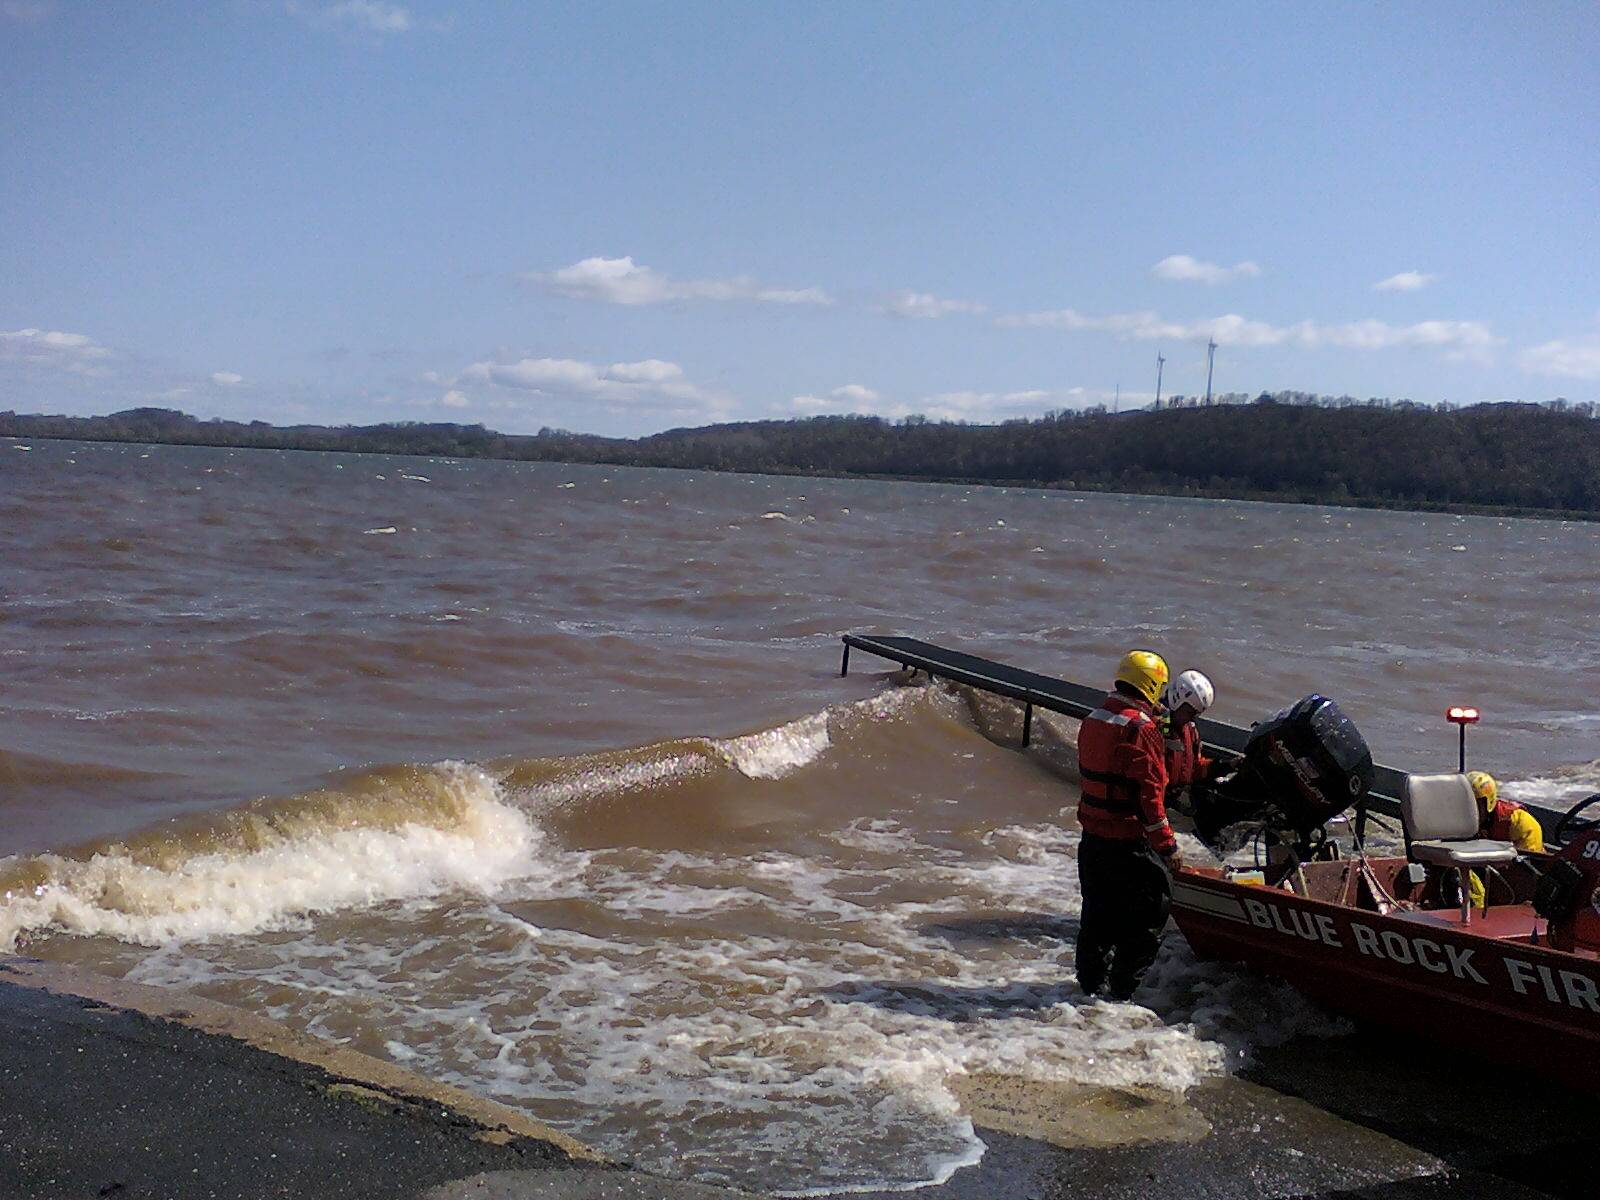 Water Rescue-Boat in Distress--03/26/2012